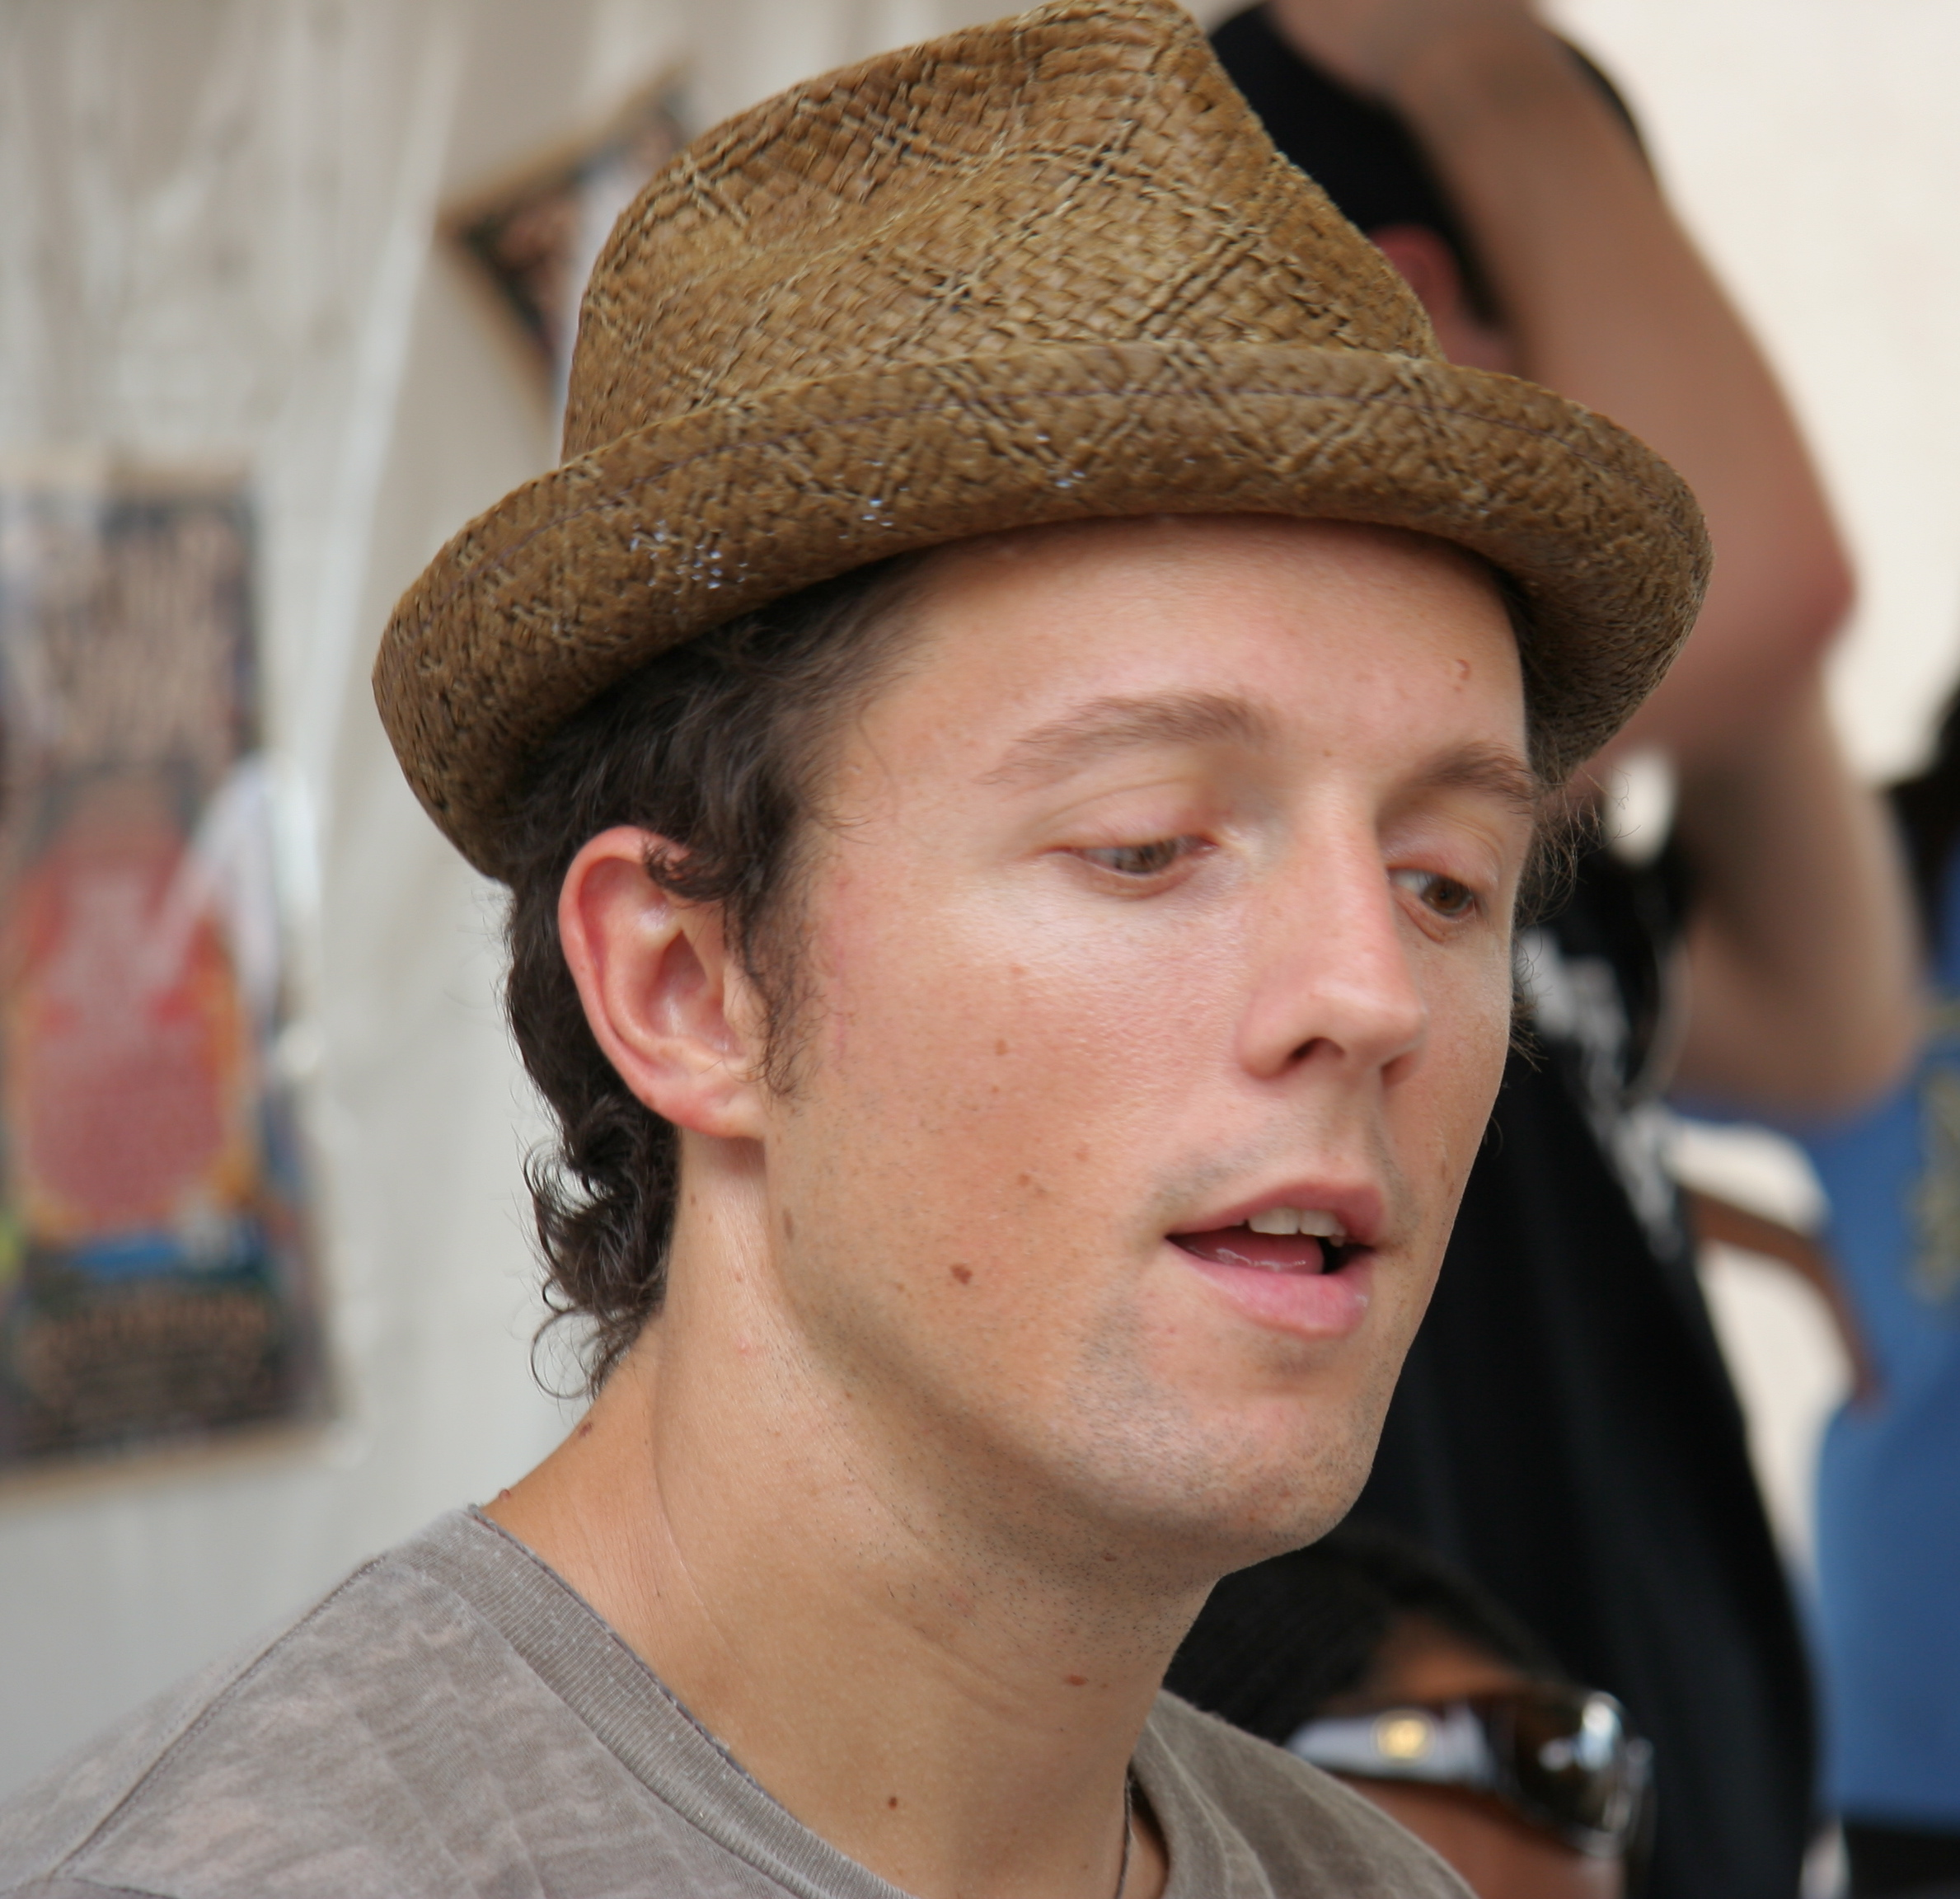 3e42d8580 File:Jasonmraz.jpg - Wikimedia Commons